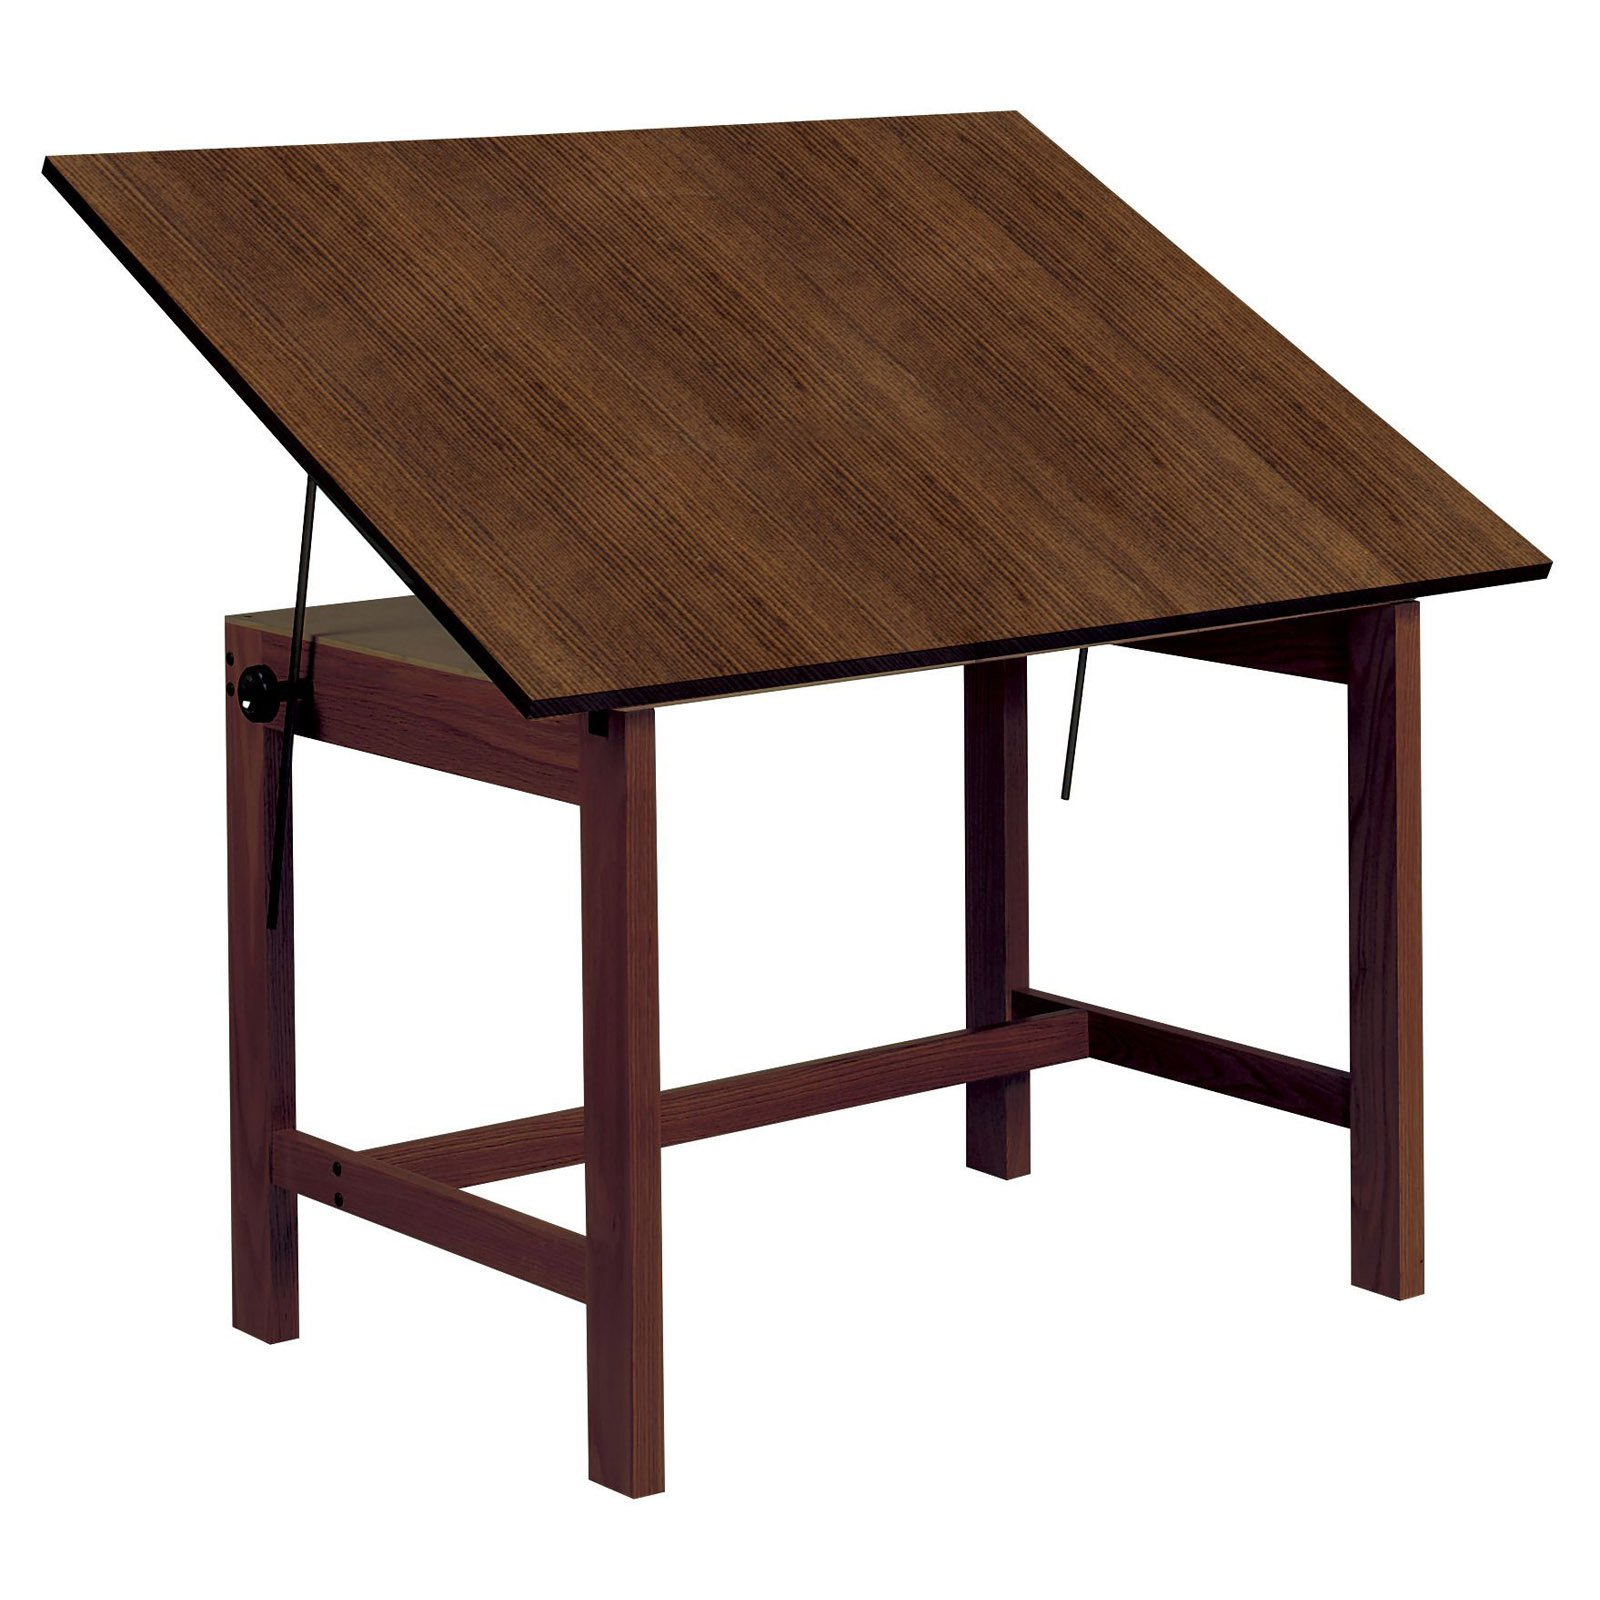 overstock studio topped designs ponderosa top wood tables sewing crafts table solid free product drafting today shipping glass frame